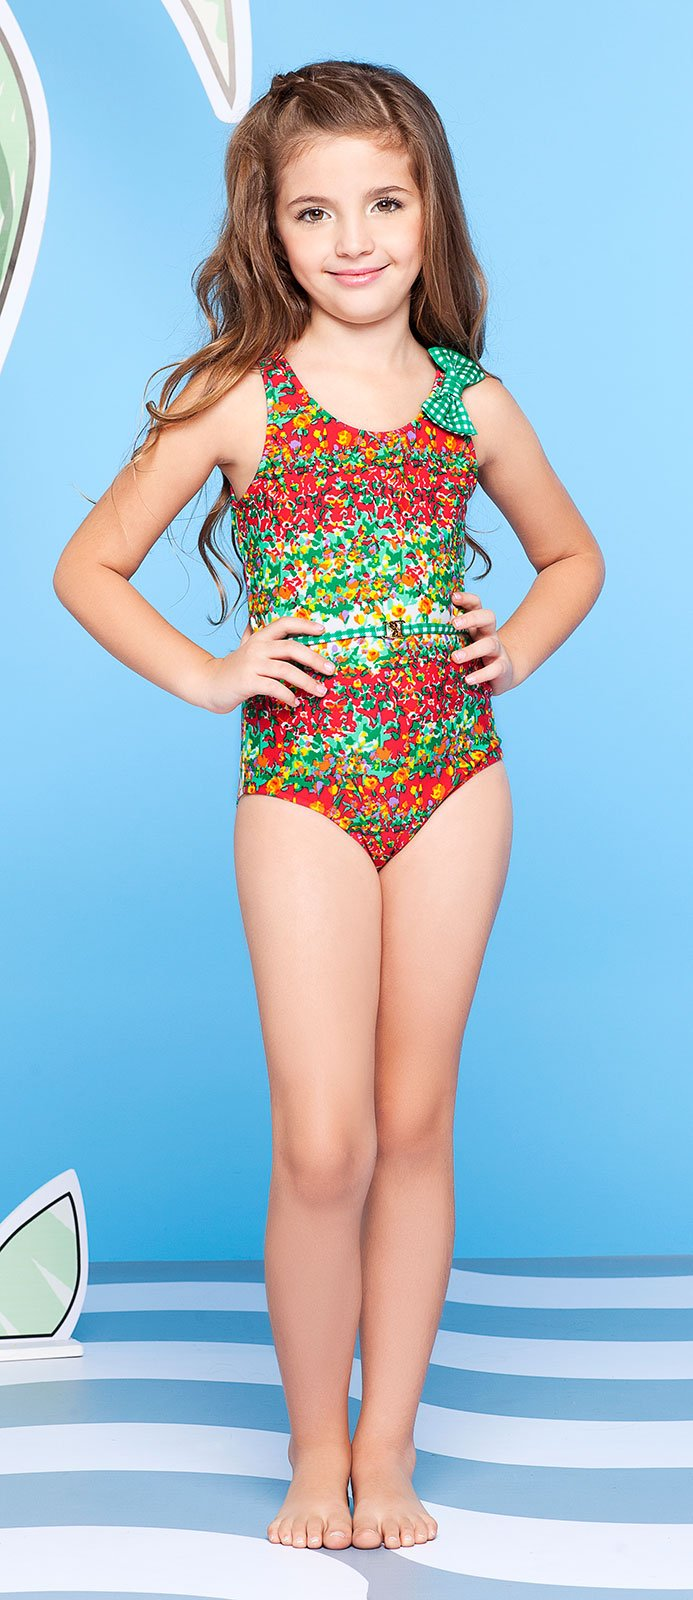 Requinho Flowery One Piece Girl S Swimsuit With Green Bow